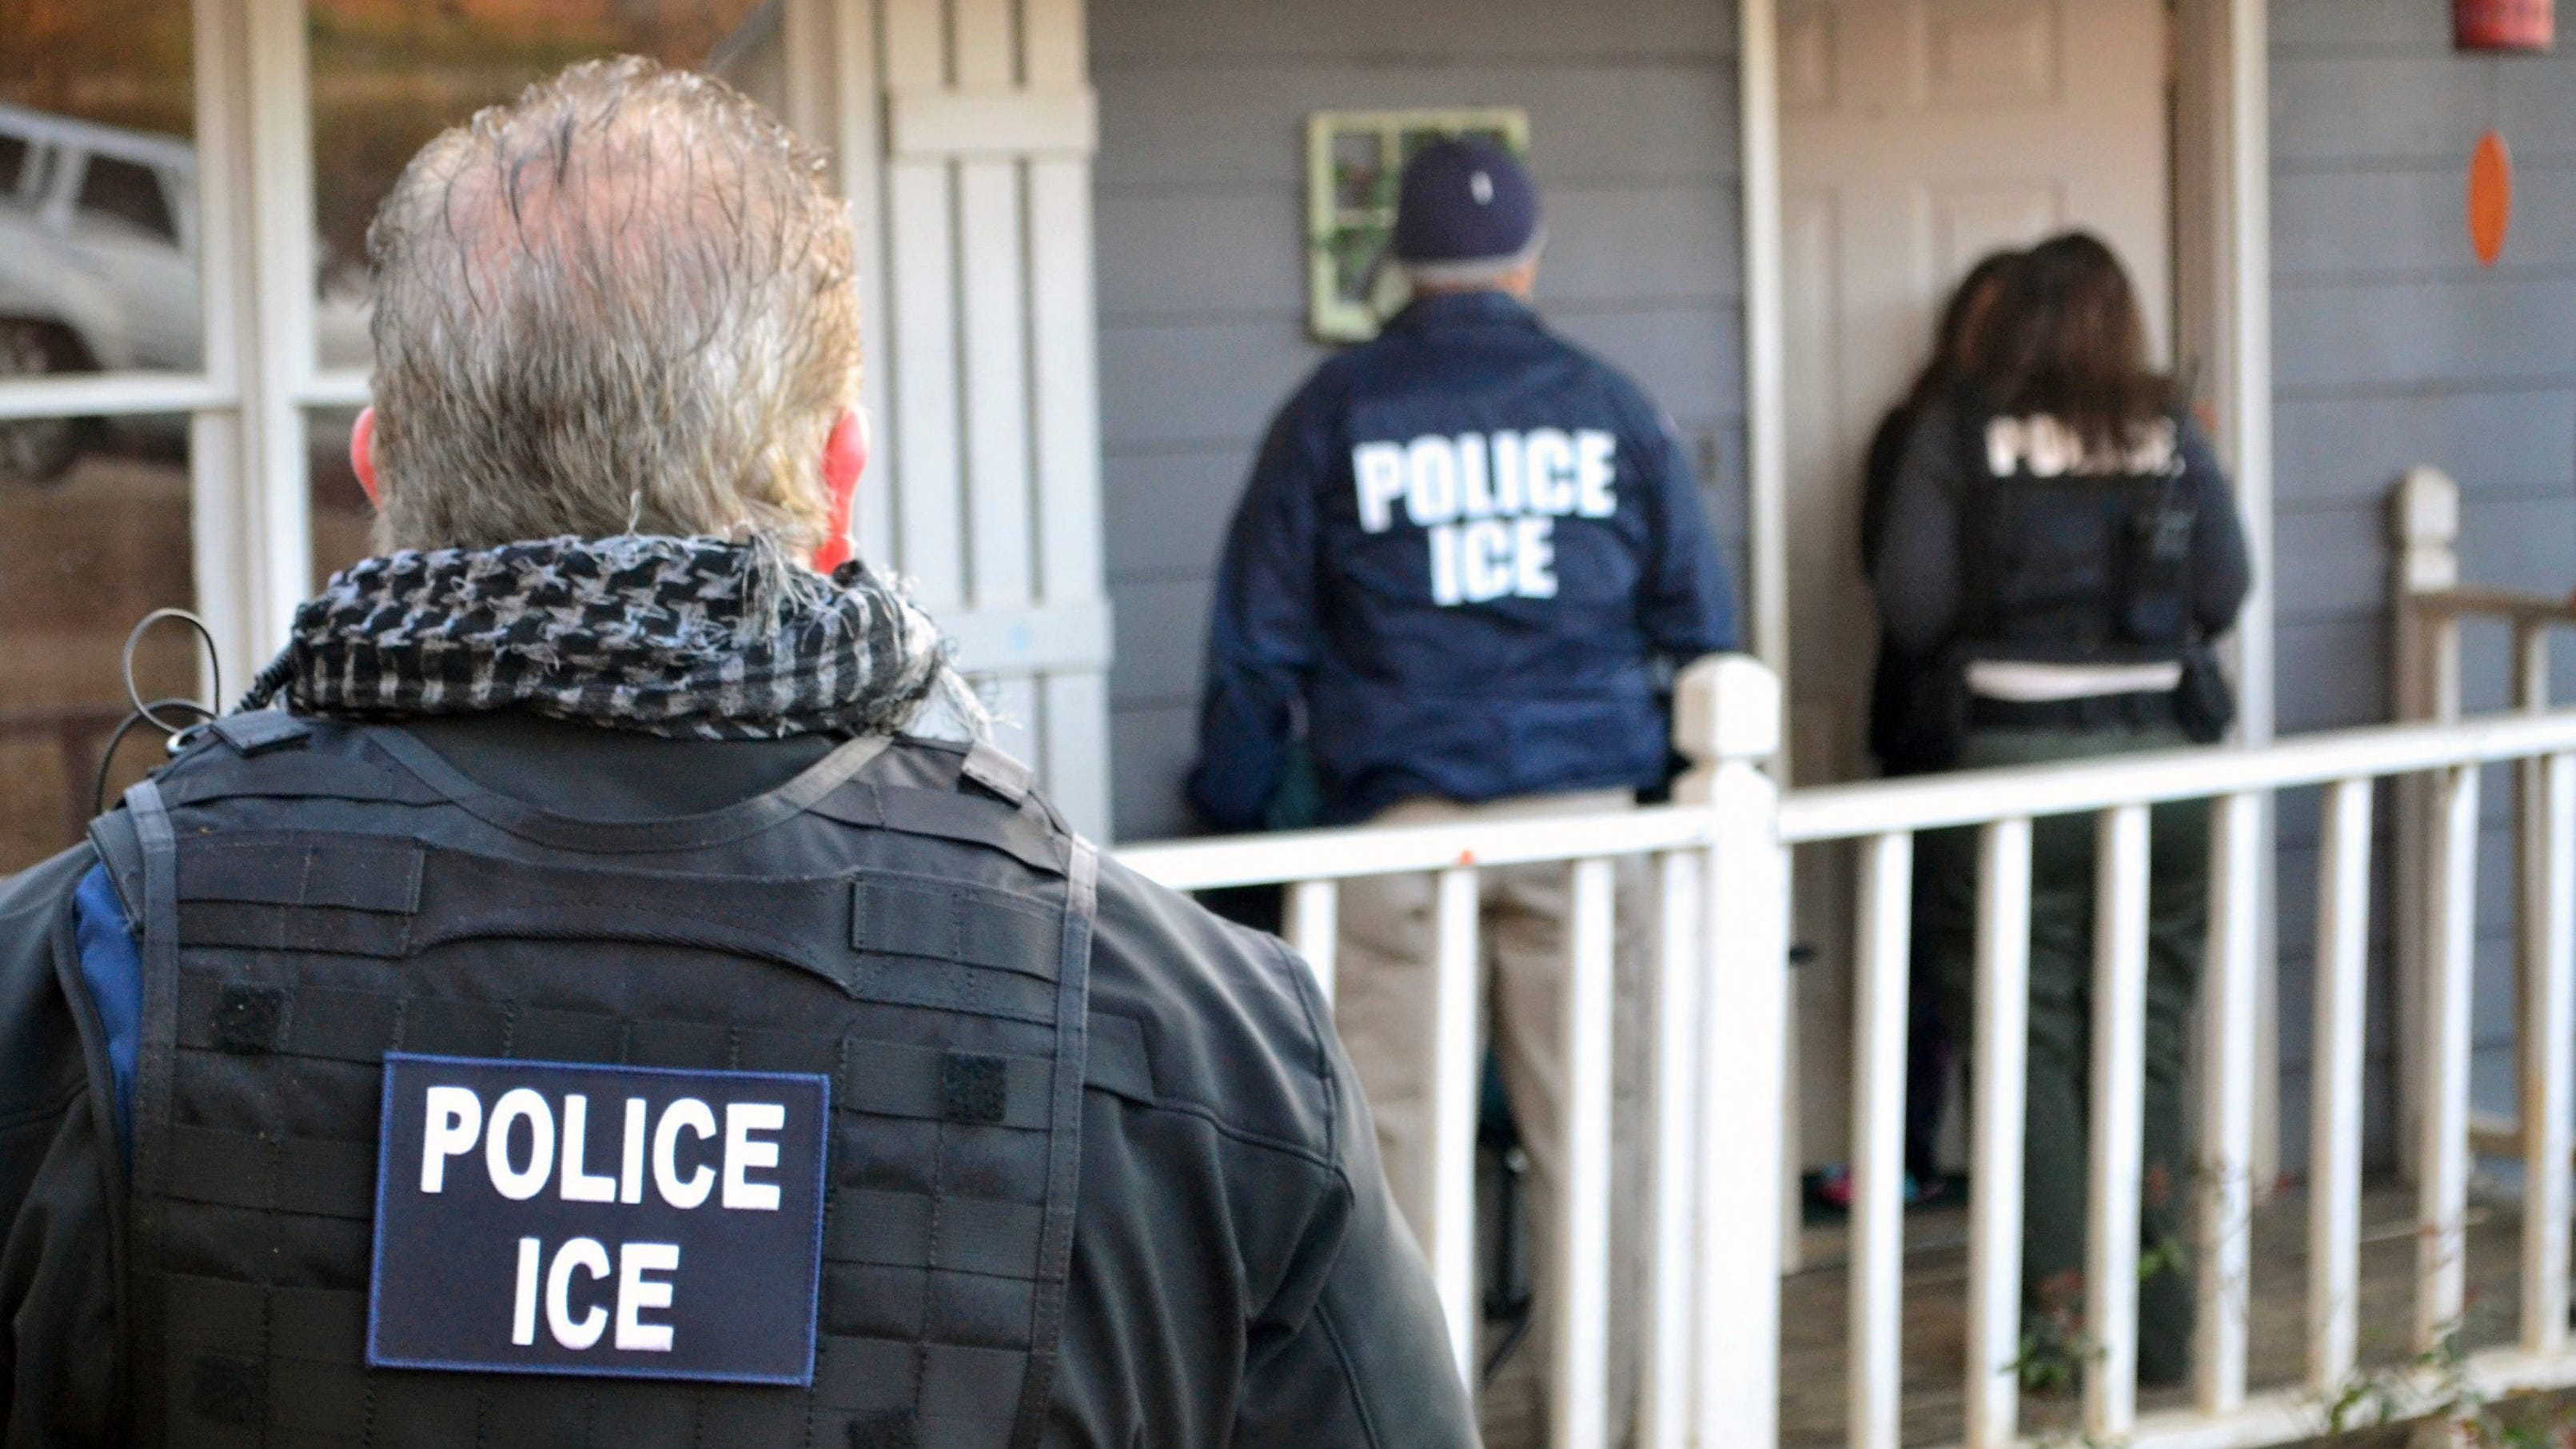 Immigration and Customs Enforcement agents at a home in Atlanta on Feb. 9, 2017, during a targeted enforcement operation aimed at immigration fugitives, re-entrants and at-large criminal aliens.